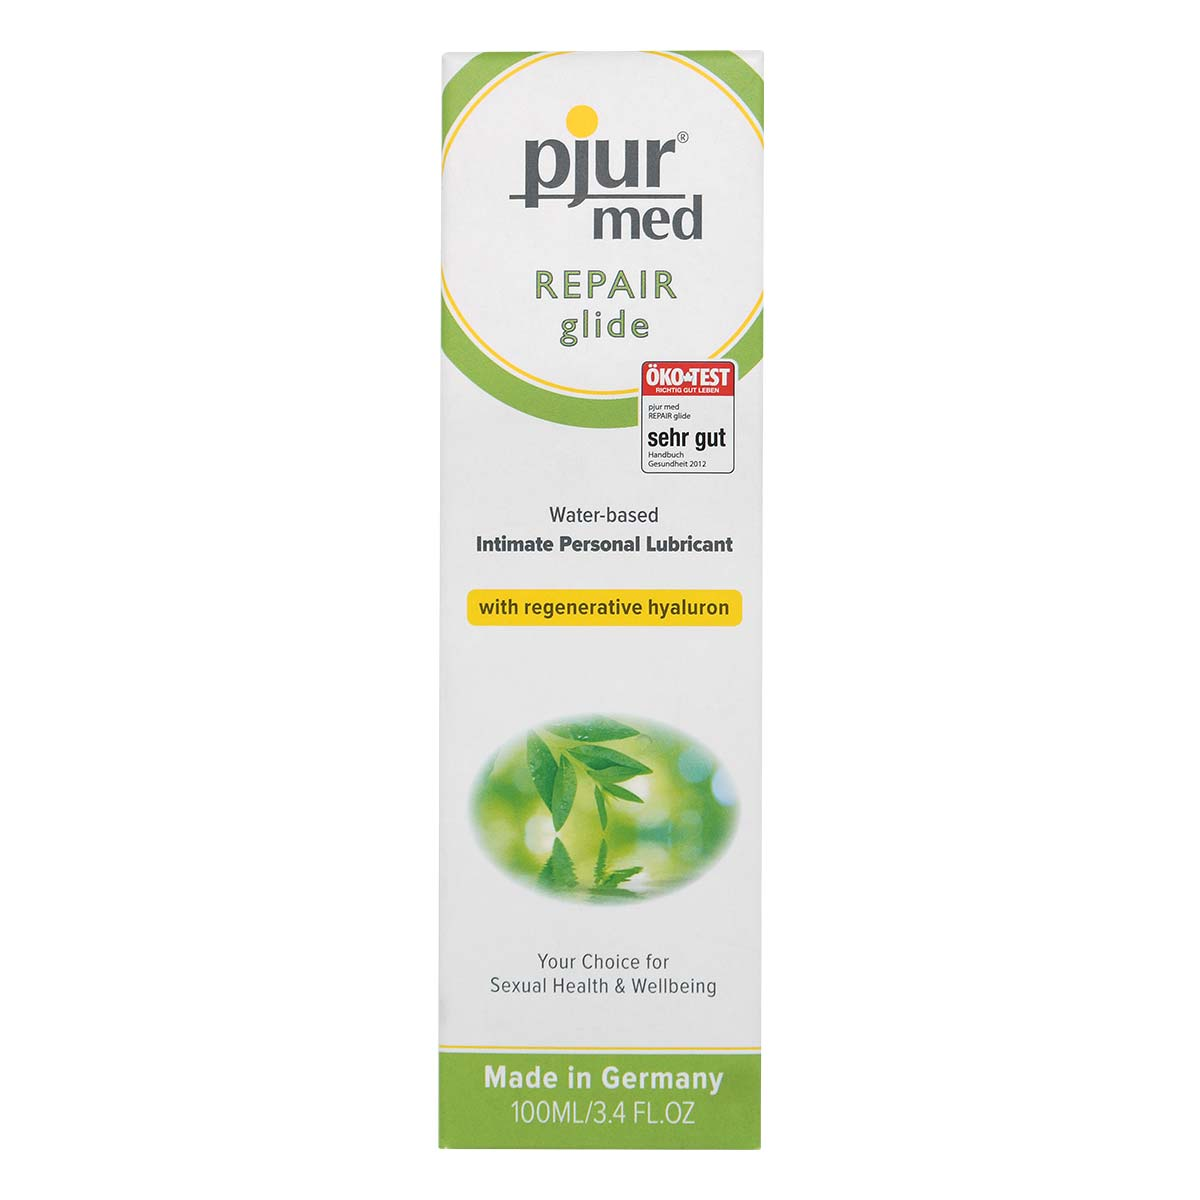 pjur med REPAIR glide 100ml Water-based Lubricant